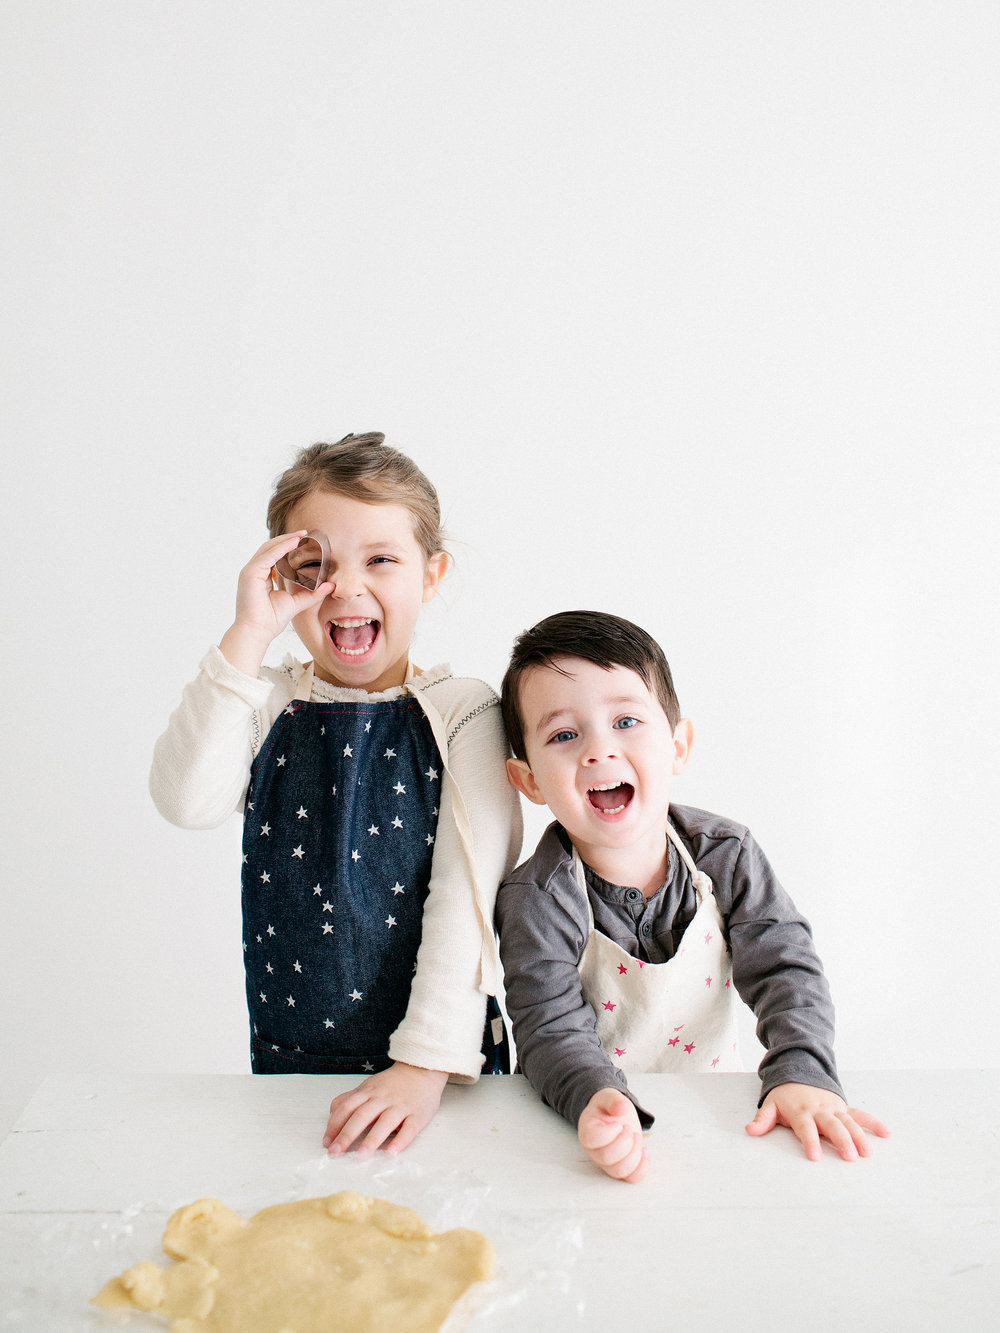 nyc-commercial-kids-photographer-12.jpg